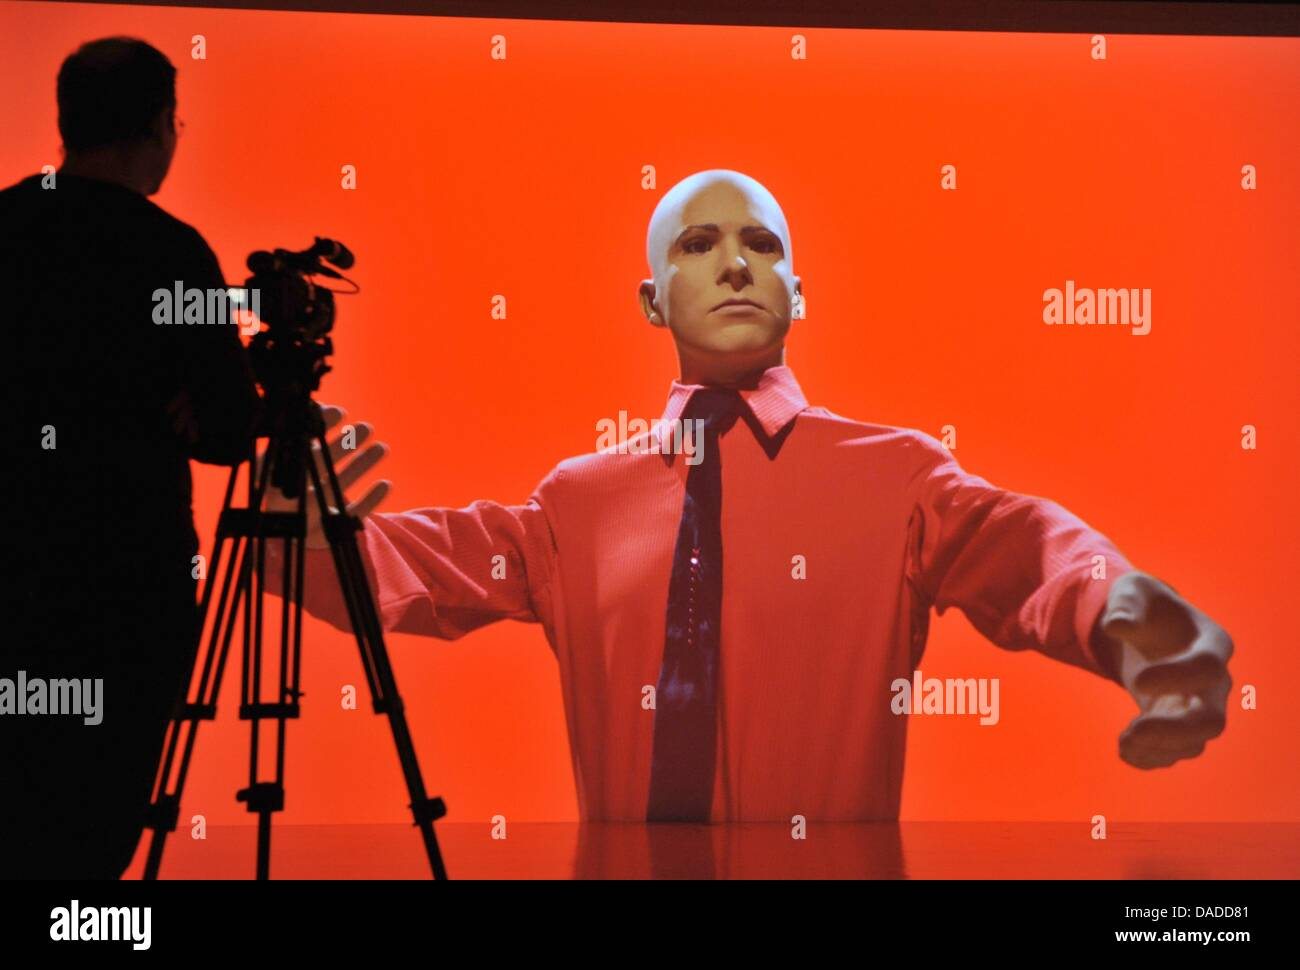 A camera man films a 3D video installation, in which a musician from the band Kraftwerk is seen, during the video Stock Photo